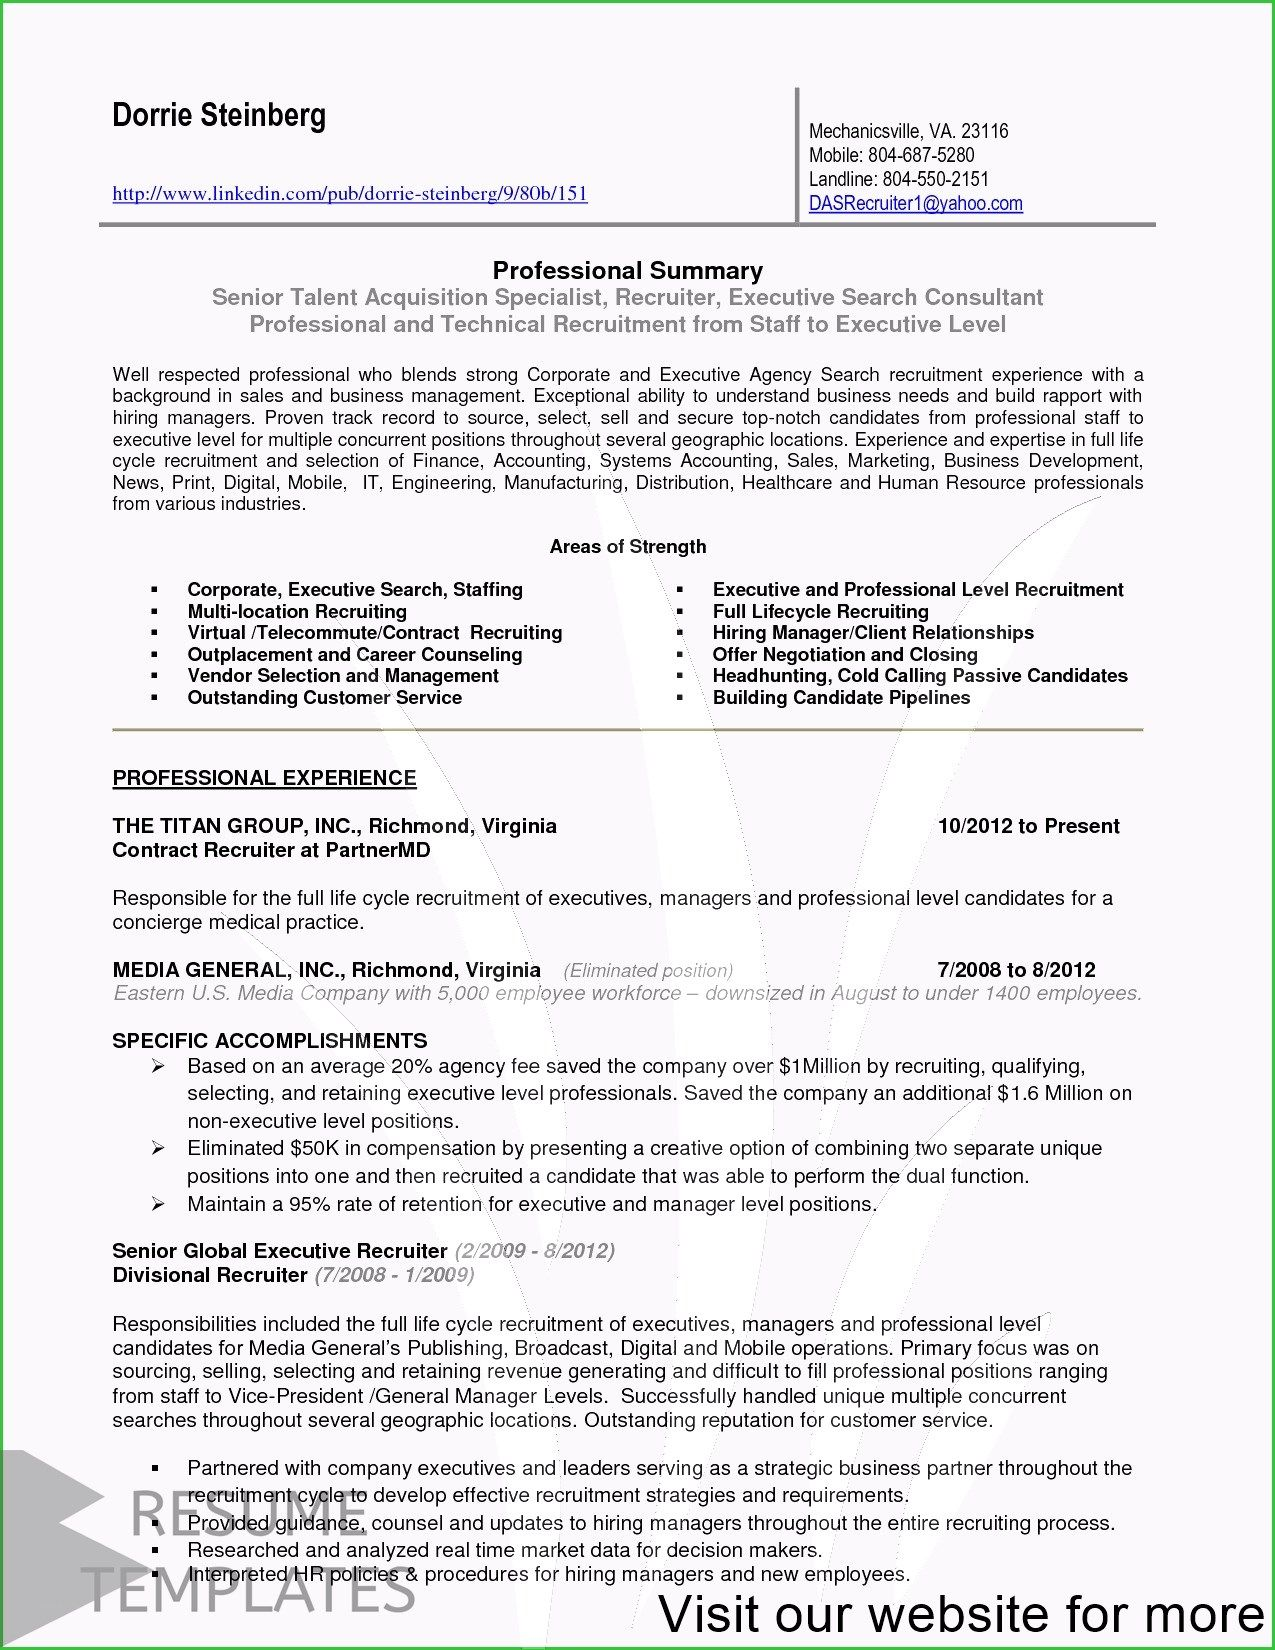 functional resume examples in 2020 job template nurse practitioner for students with no work experience download curriculum vitae word